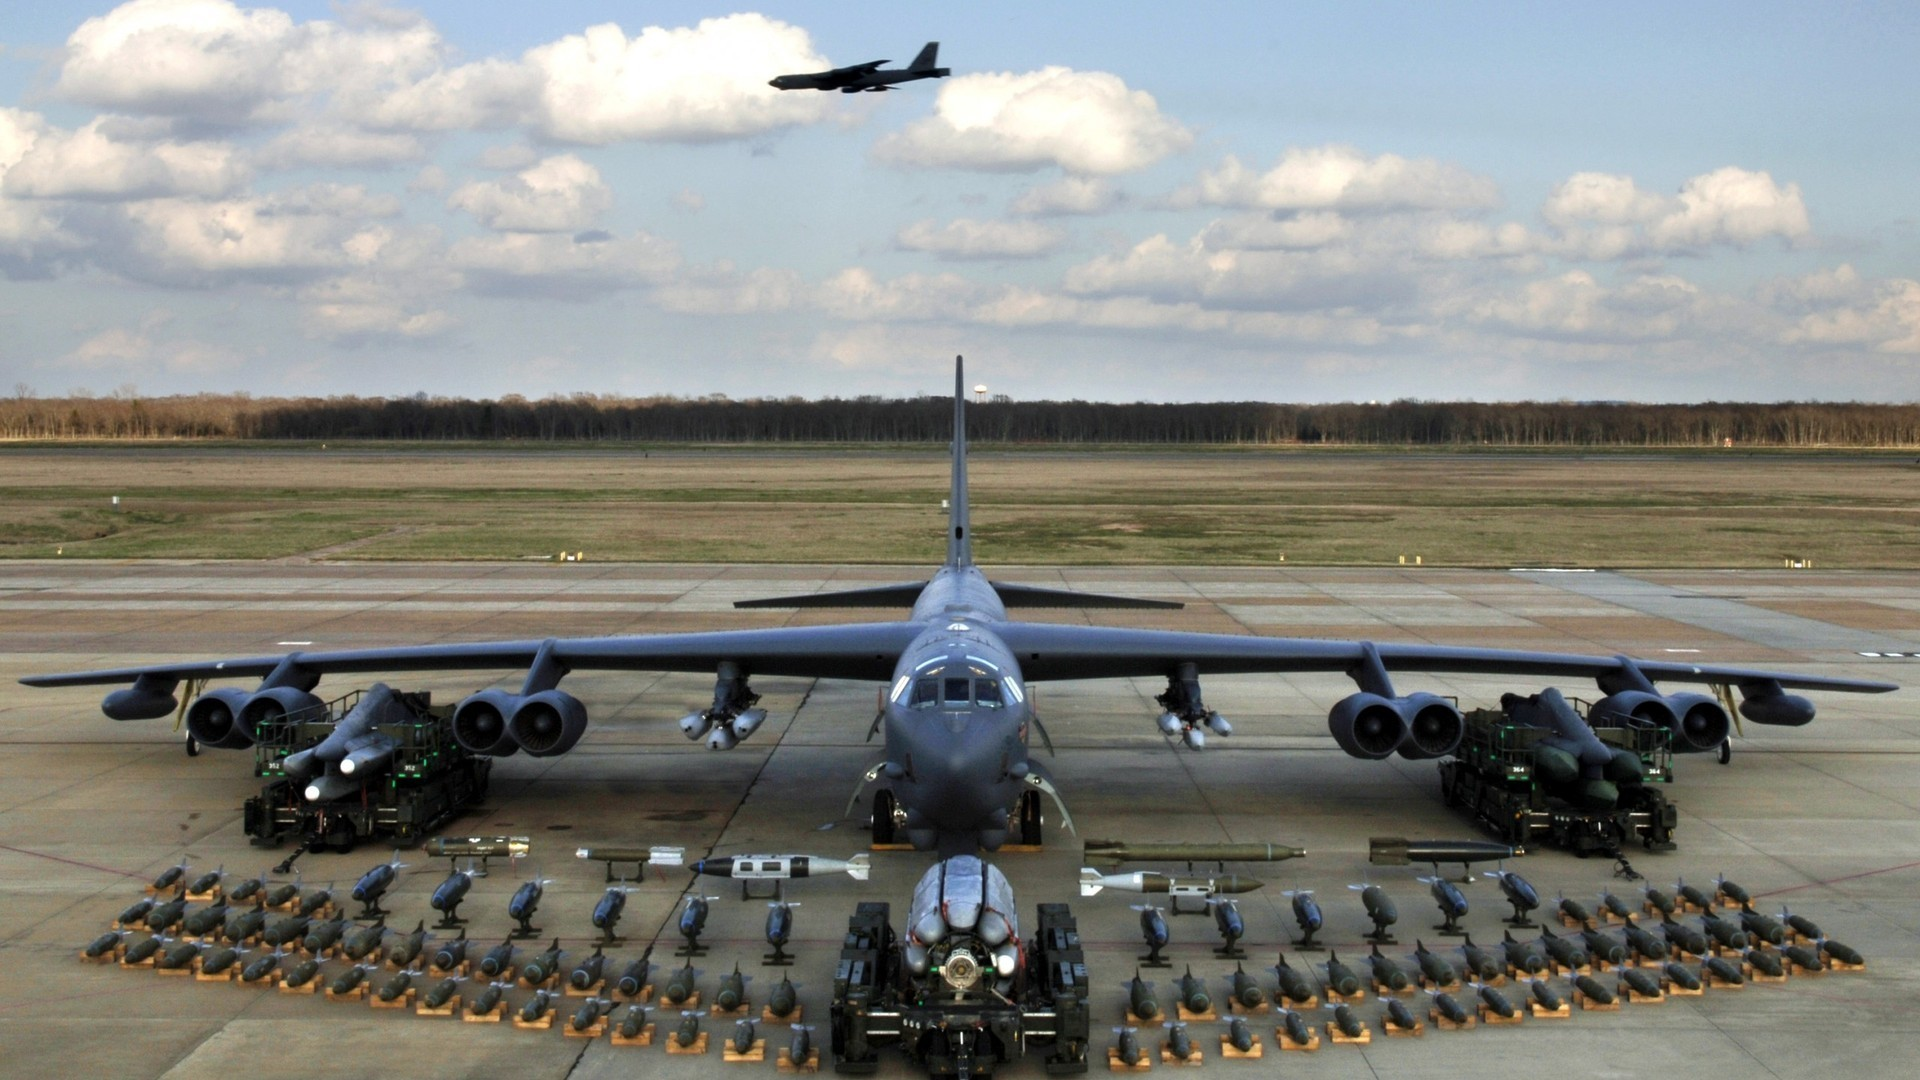 Aircraft military B-52 Stratofortress HD Wallpaper